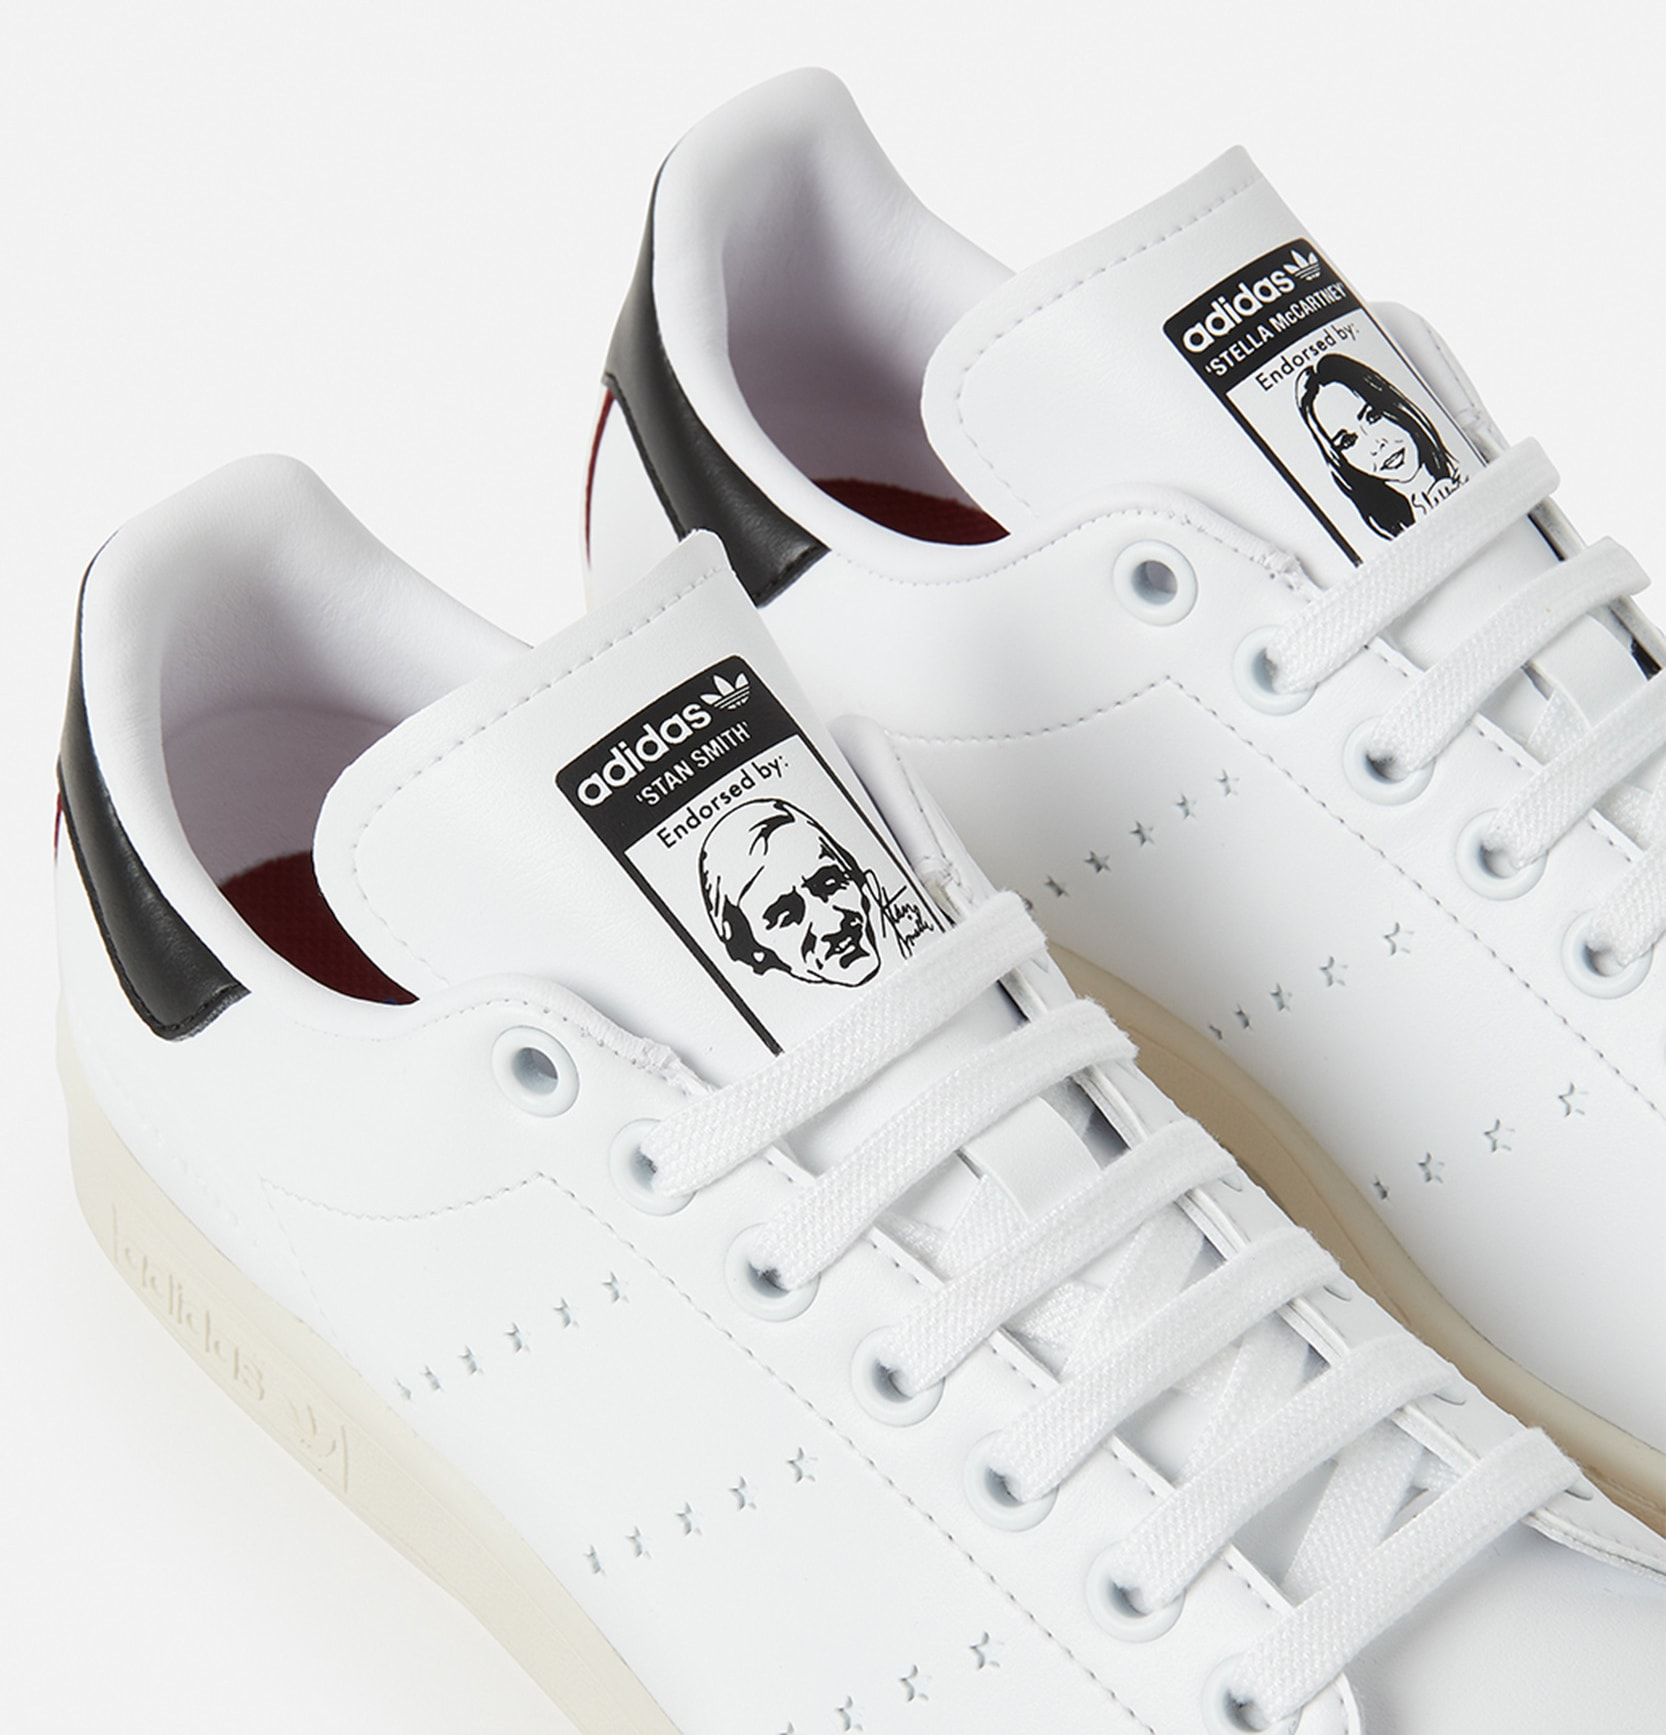 Stella McCartney x Adidas Stan Smith (Tongue)